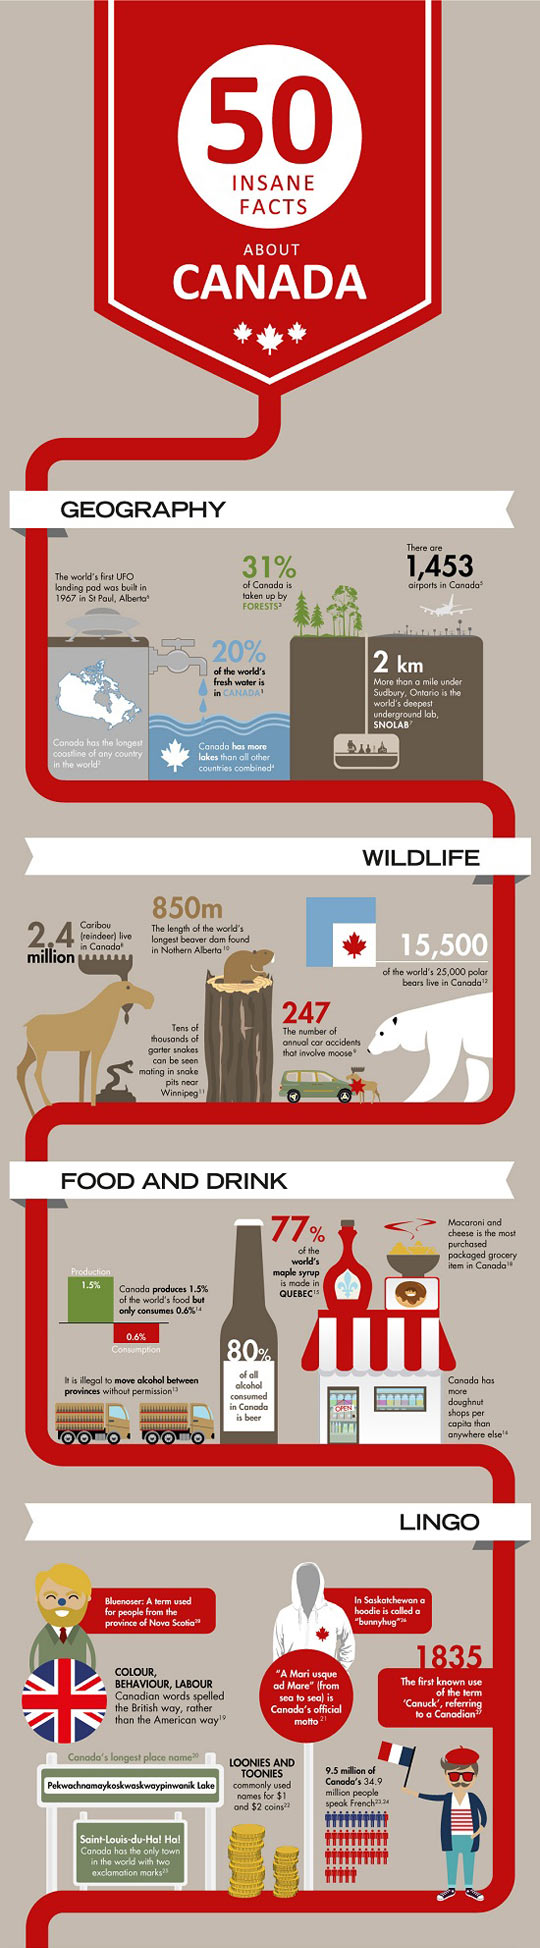 funny-Canada-insane-facts-life-country